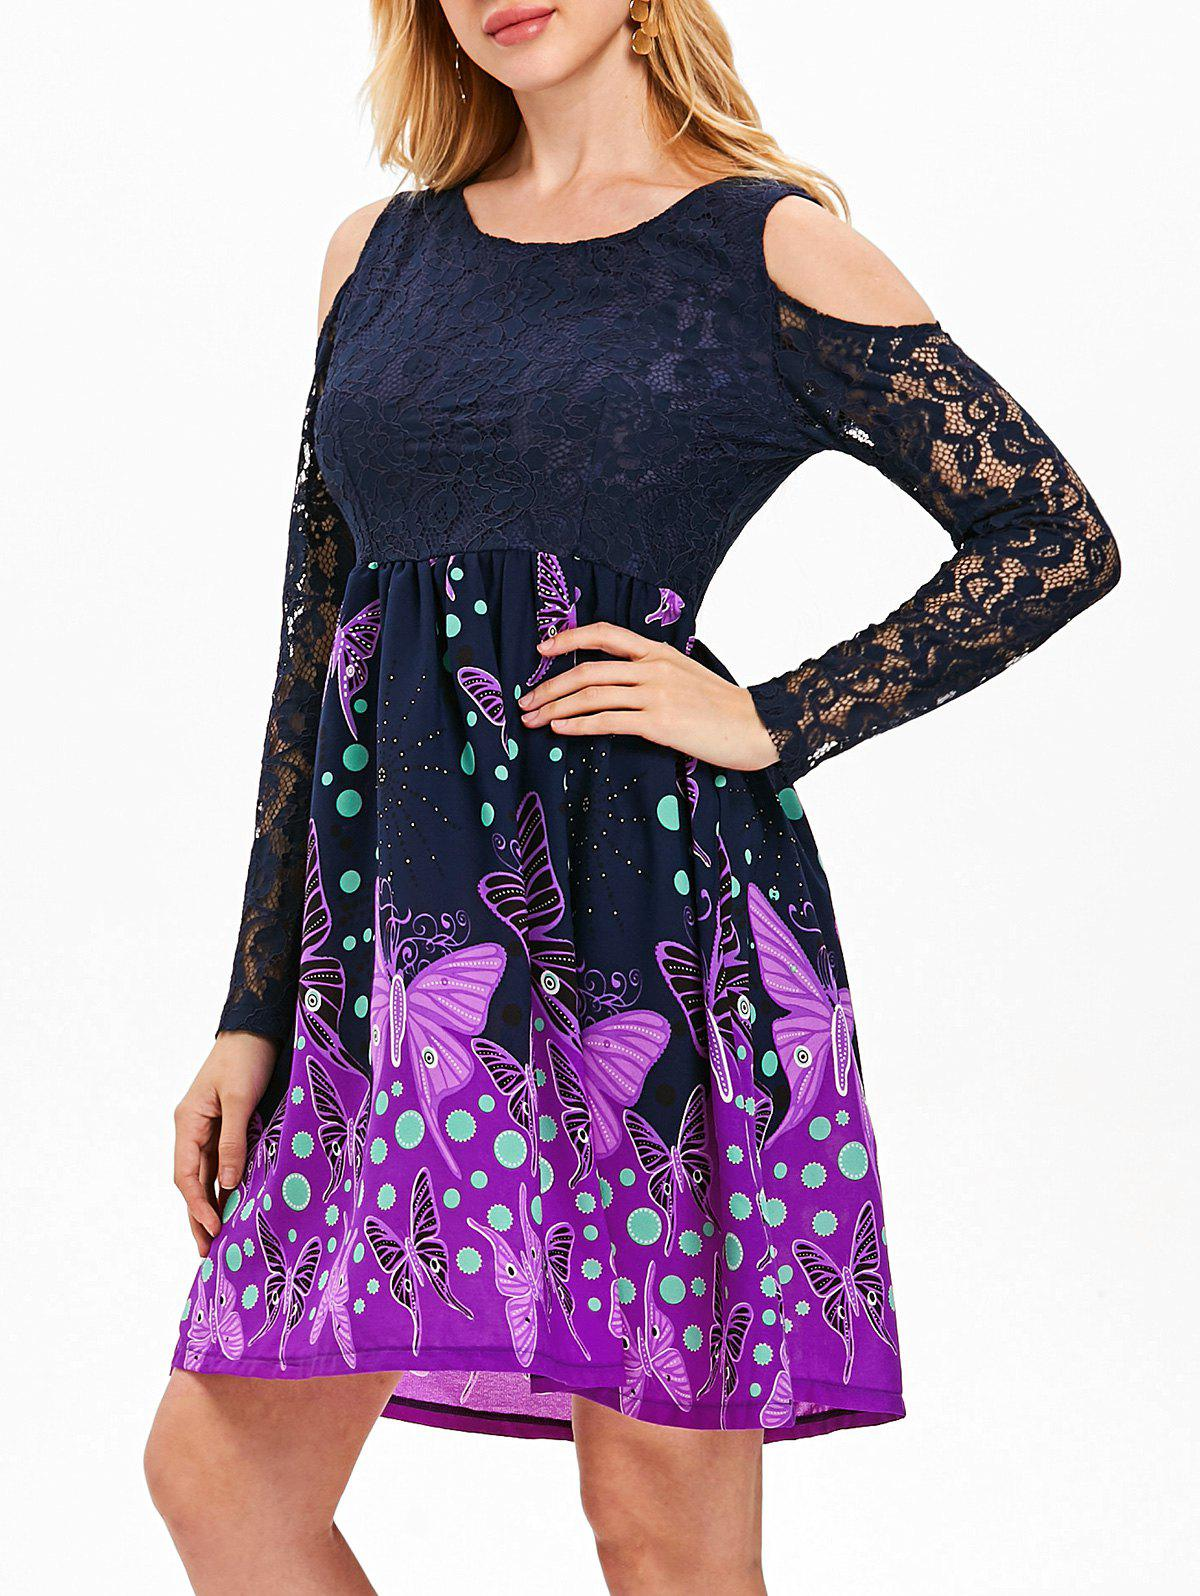 Lace Butterfly Print Knee Length Dress - MIDNIGHT BLUE S